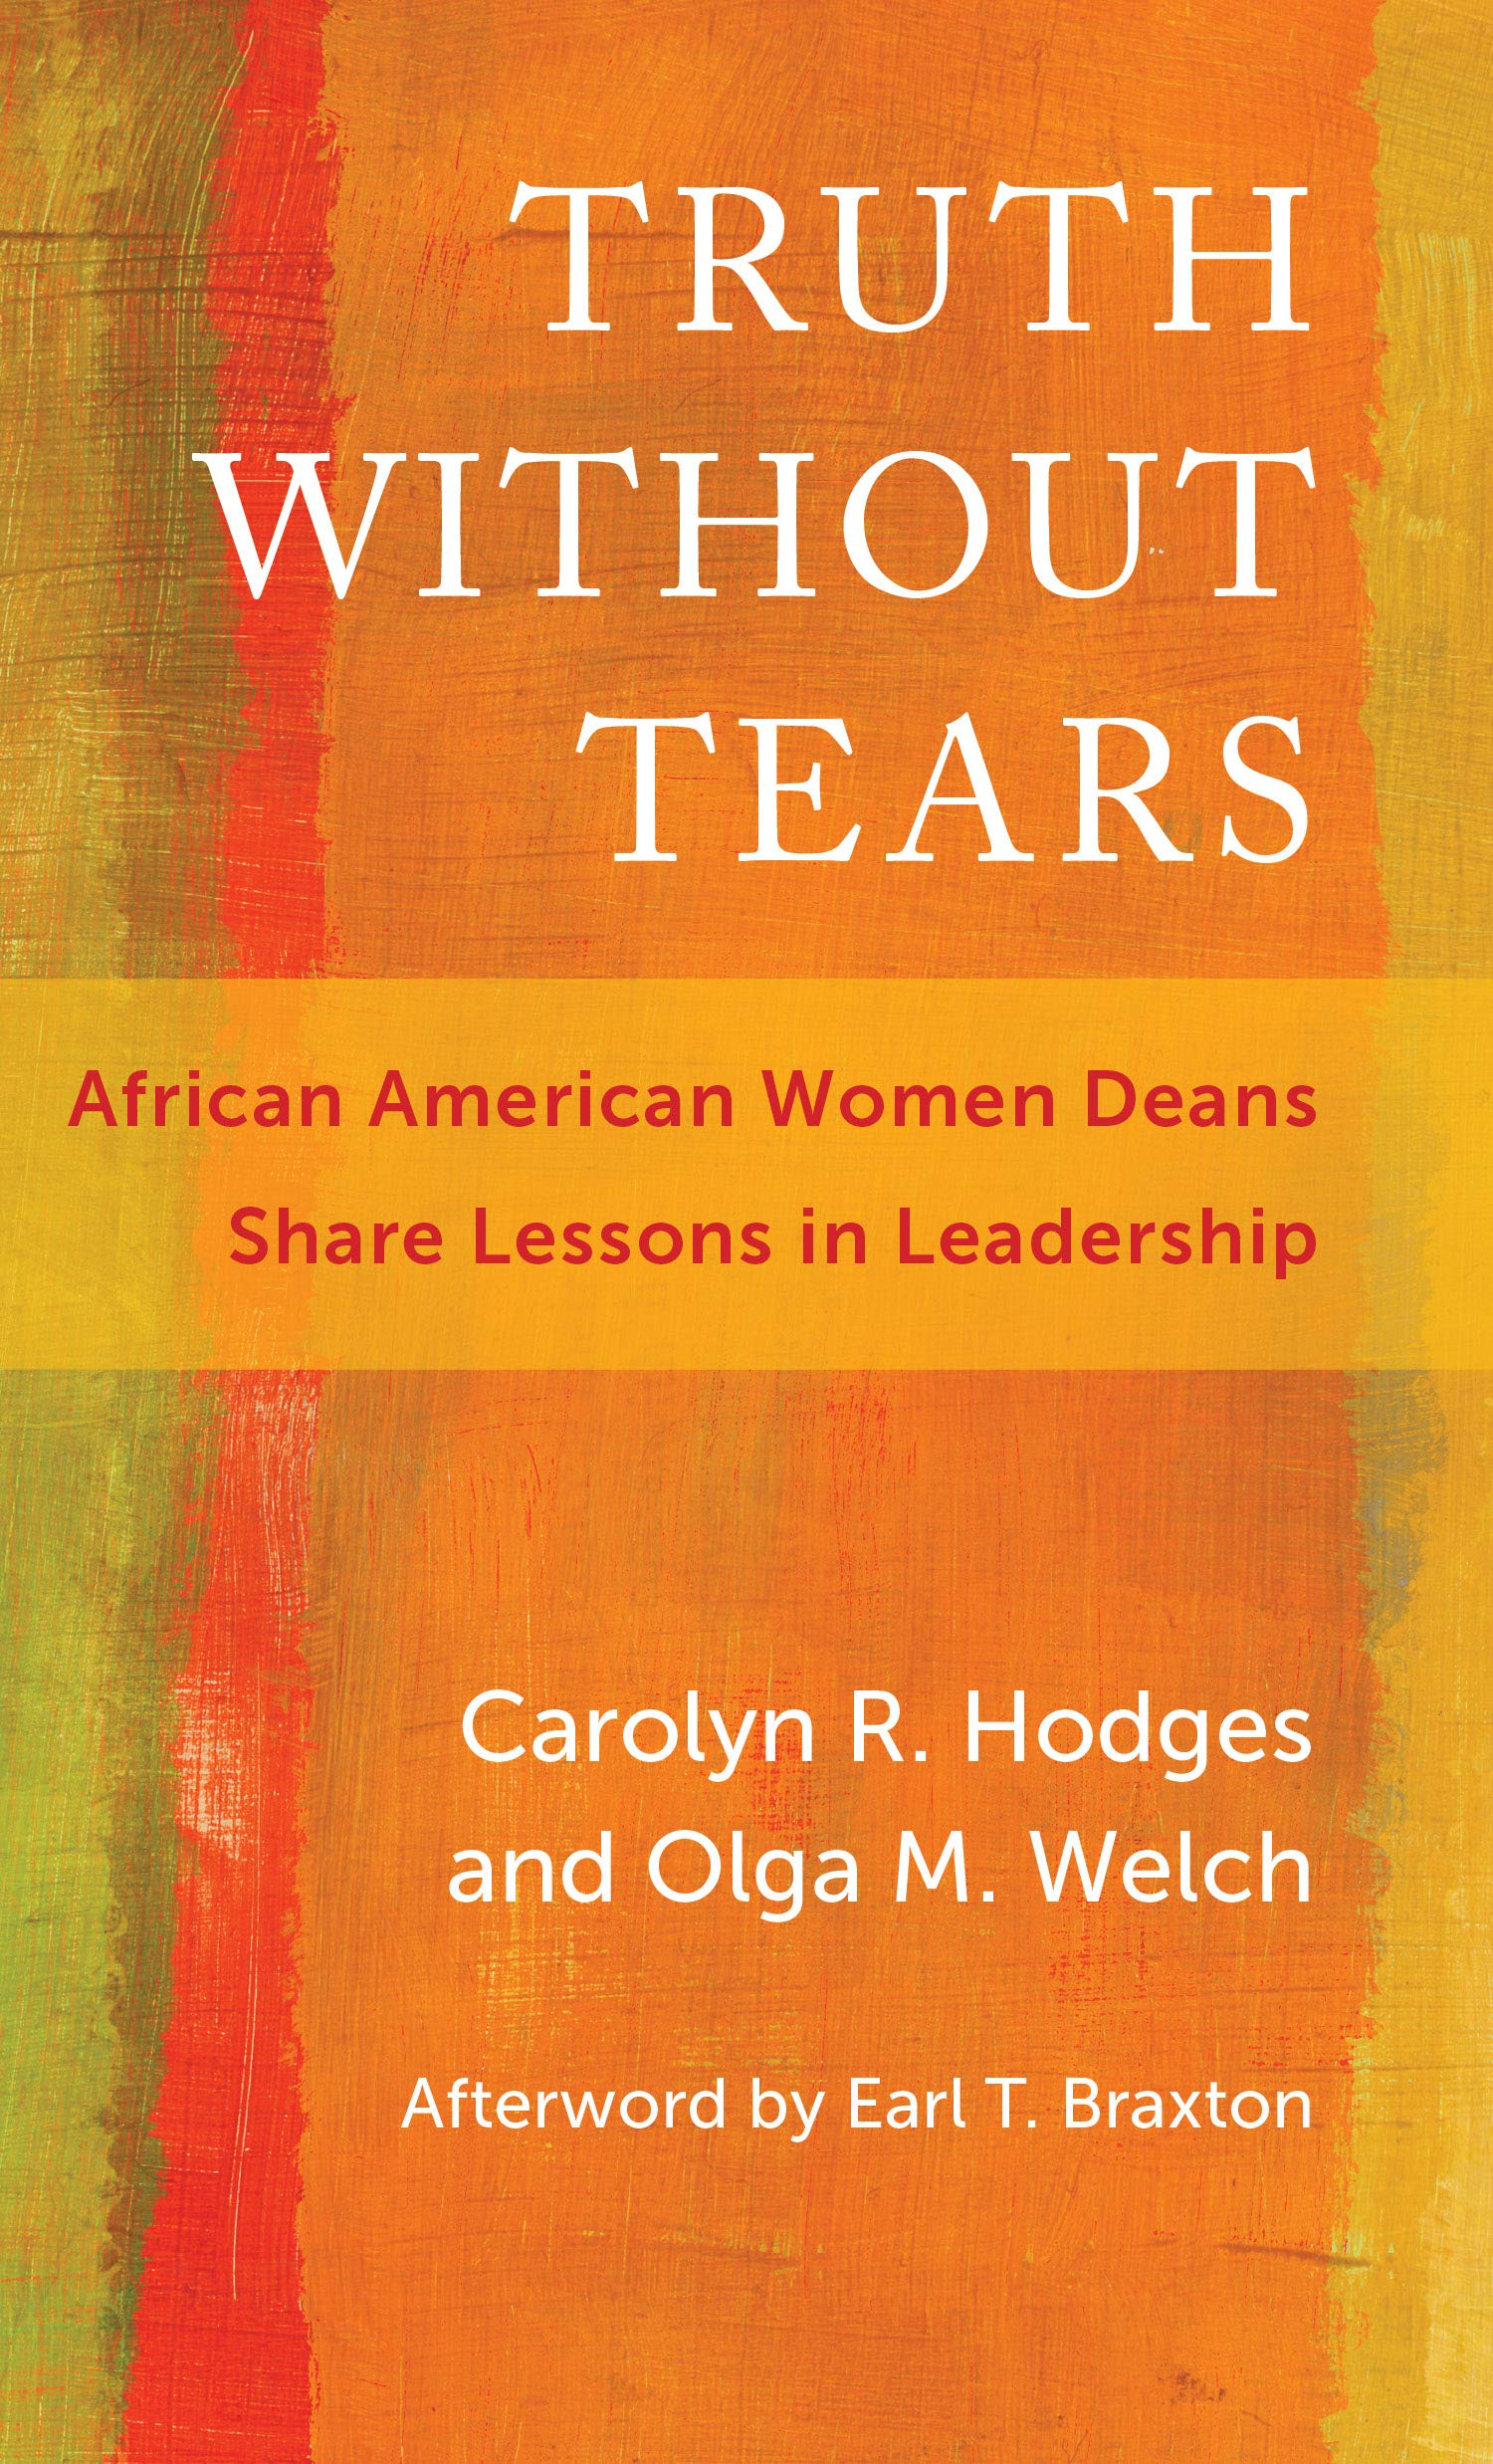 Download Truth Without Tears: African American Women Deans Share Lessons in Leadership (Race and Education) ebook